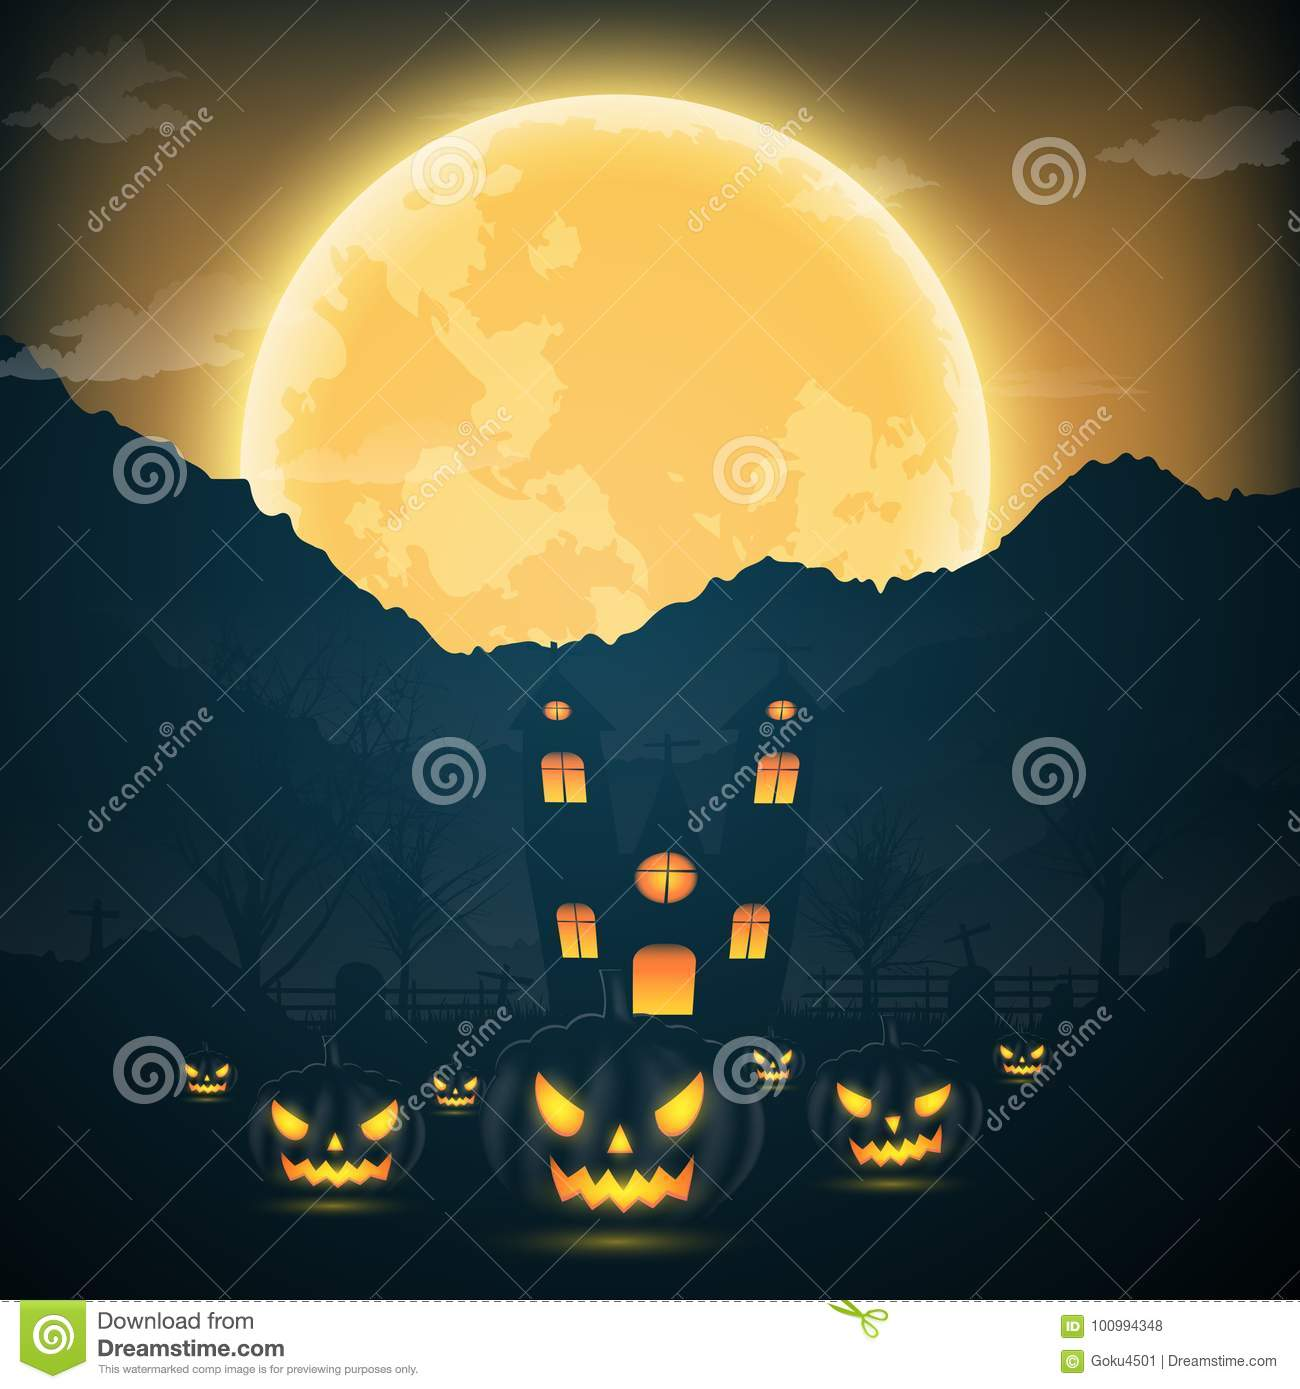 Halloween night background with pumpkin, naked trees, bat haunted house and  full moon on dark background.Vector illustration.